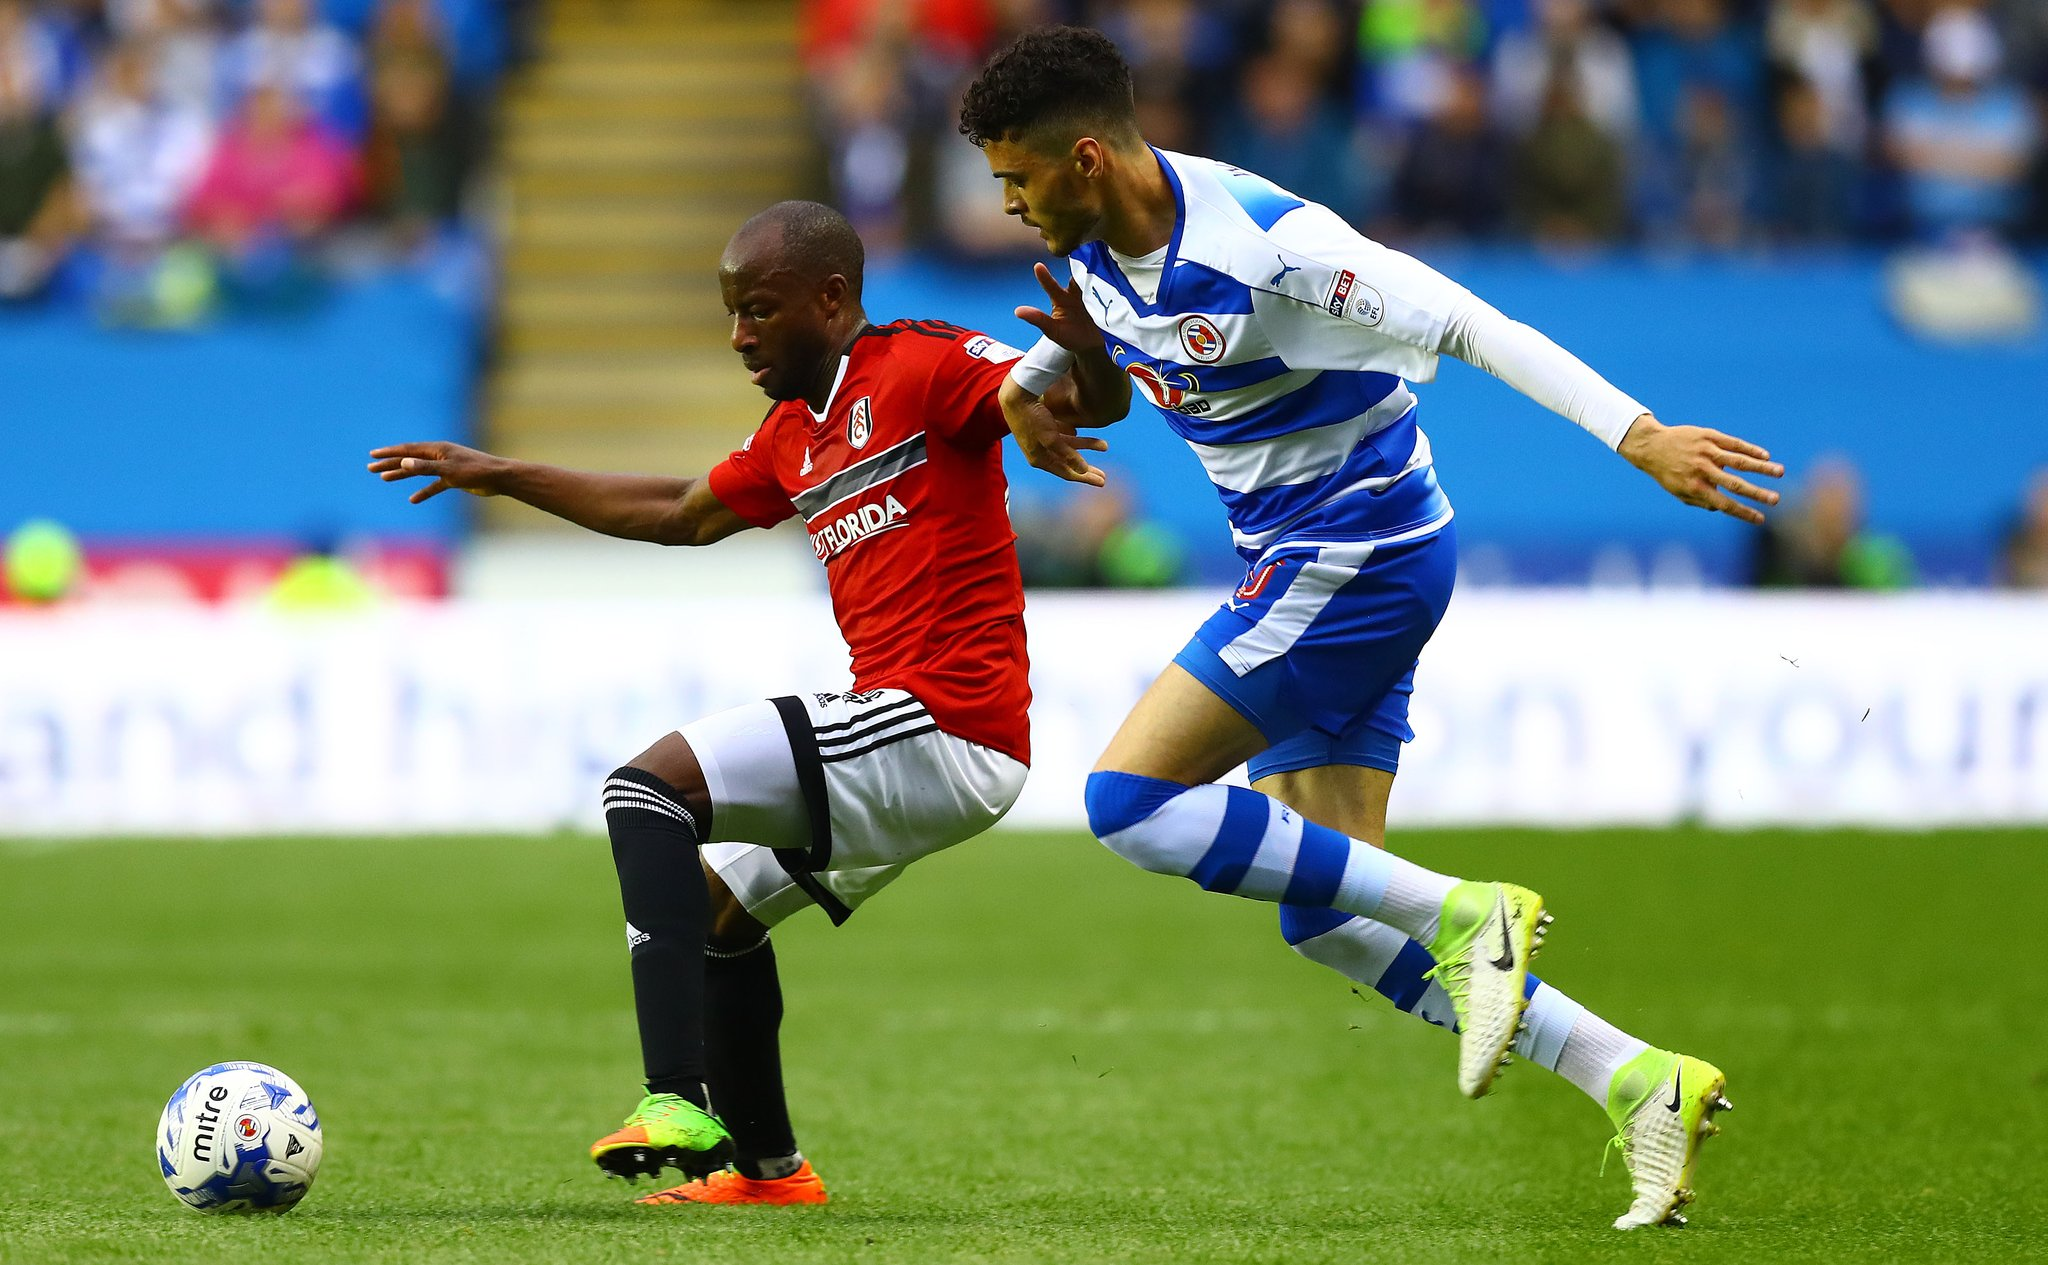 Reading Knock Aluko's Fulham Out Of EPL Play-Offs